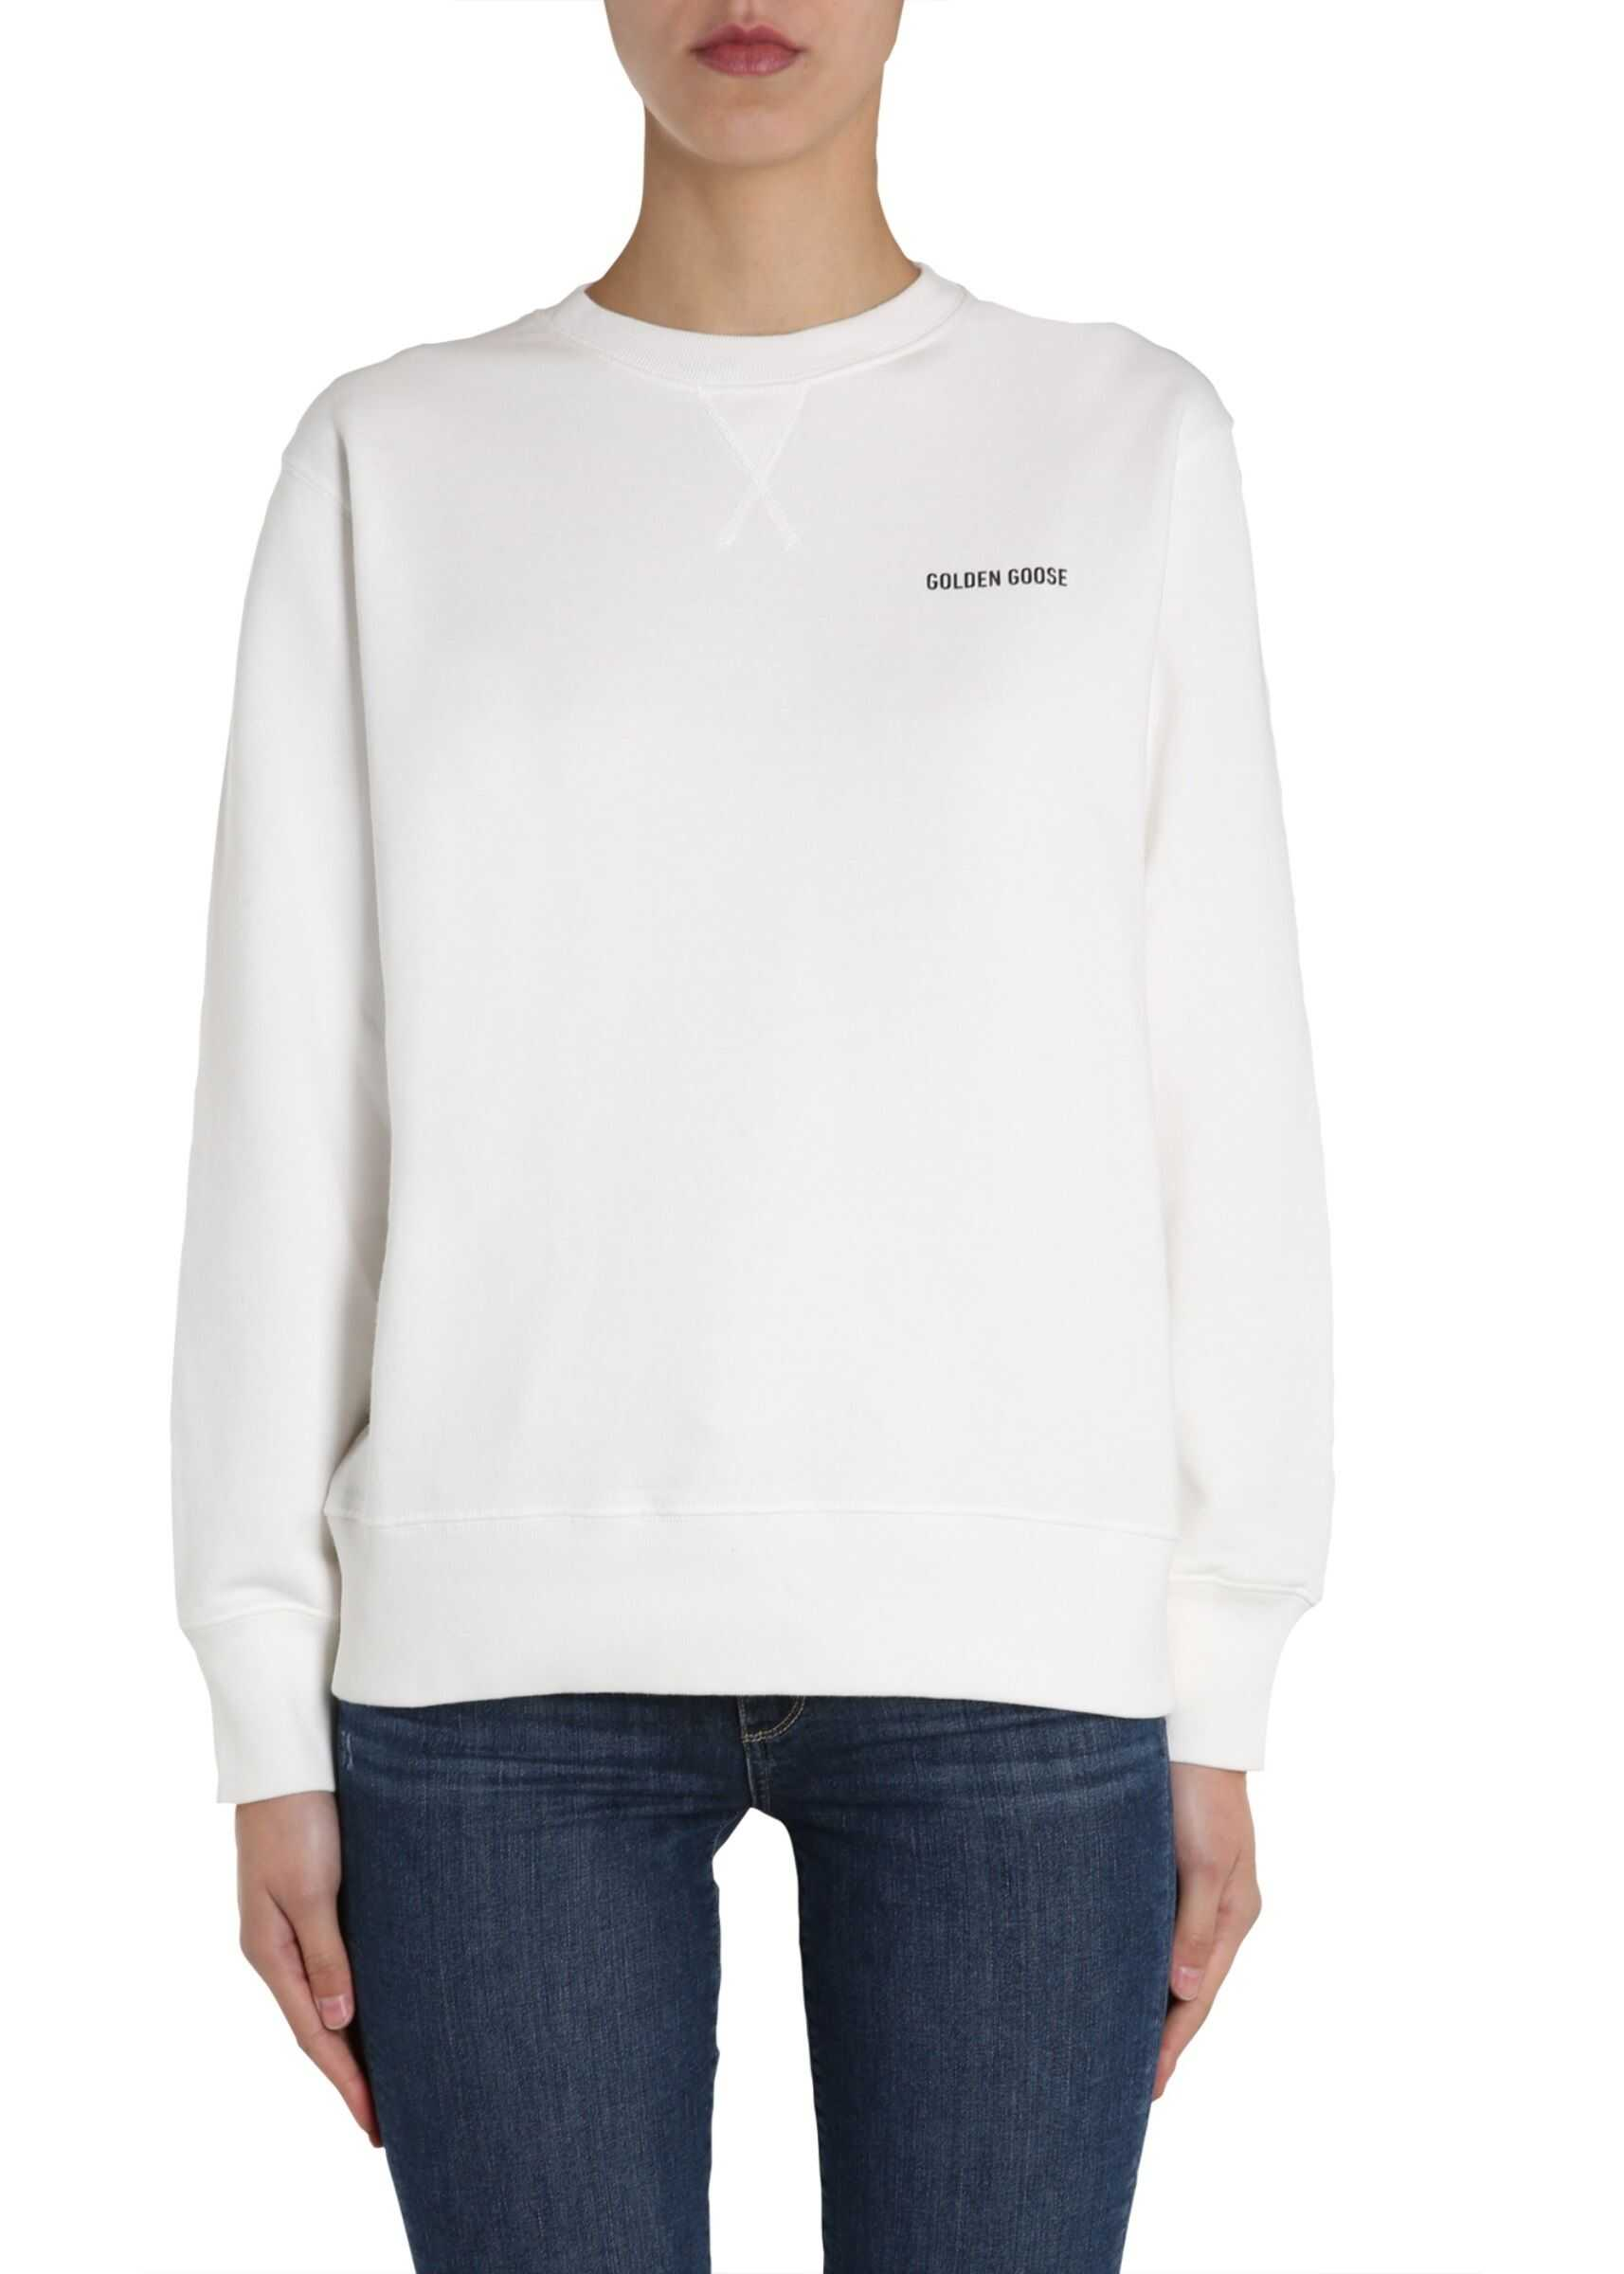 Golden Goose Round Neck Sweatshirt WHITE